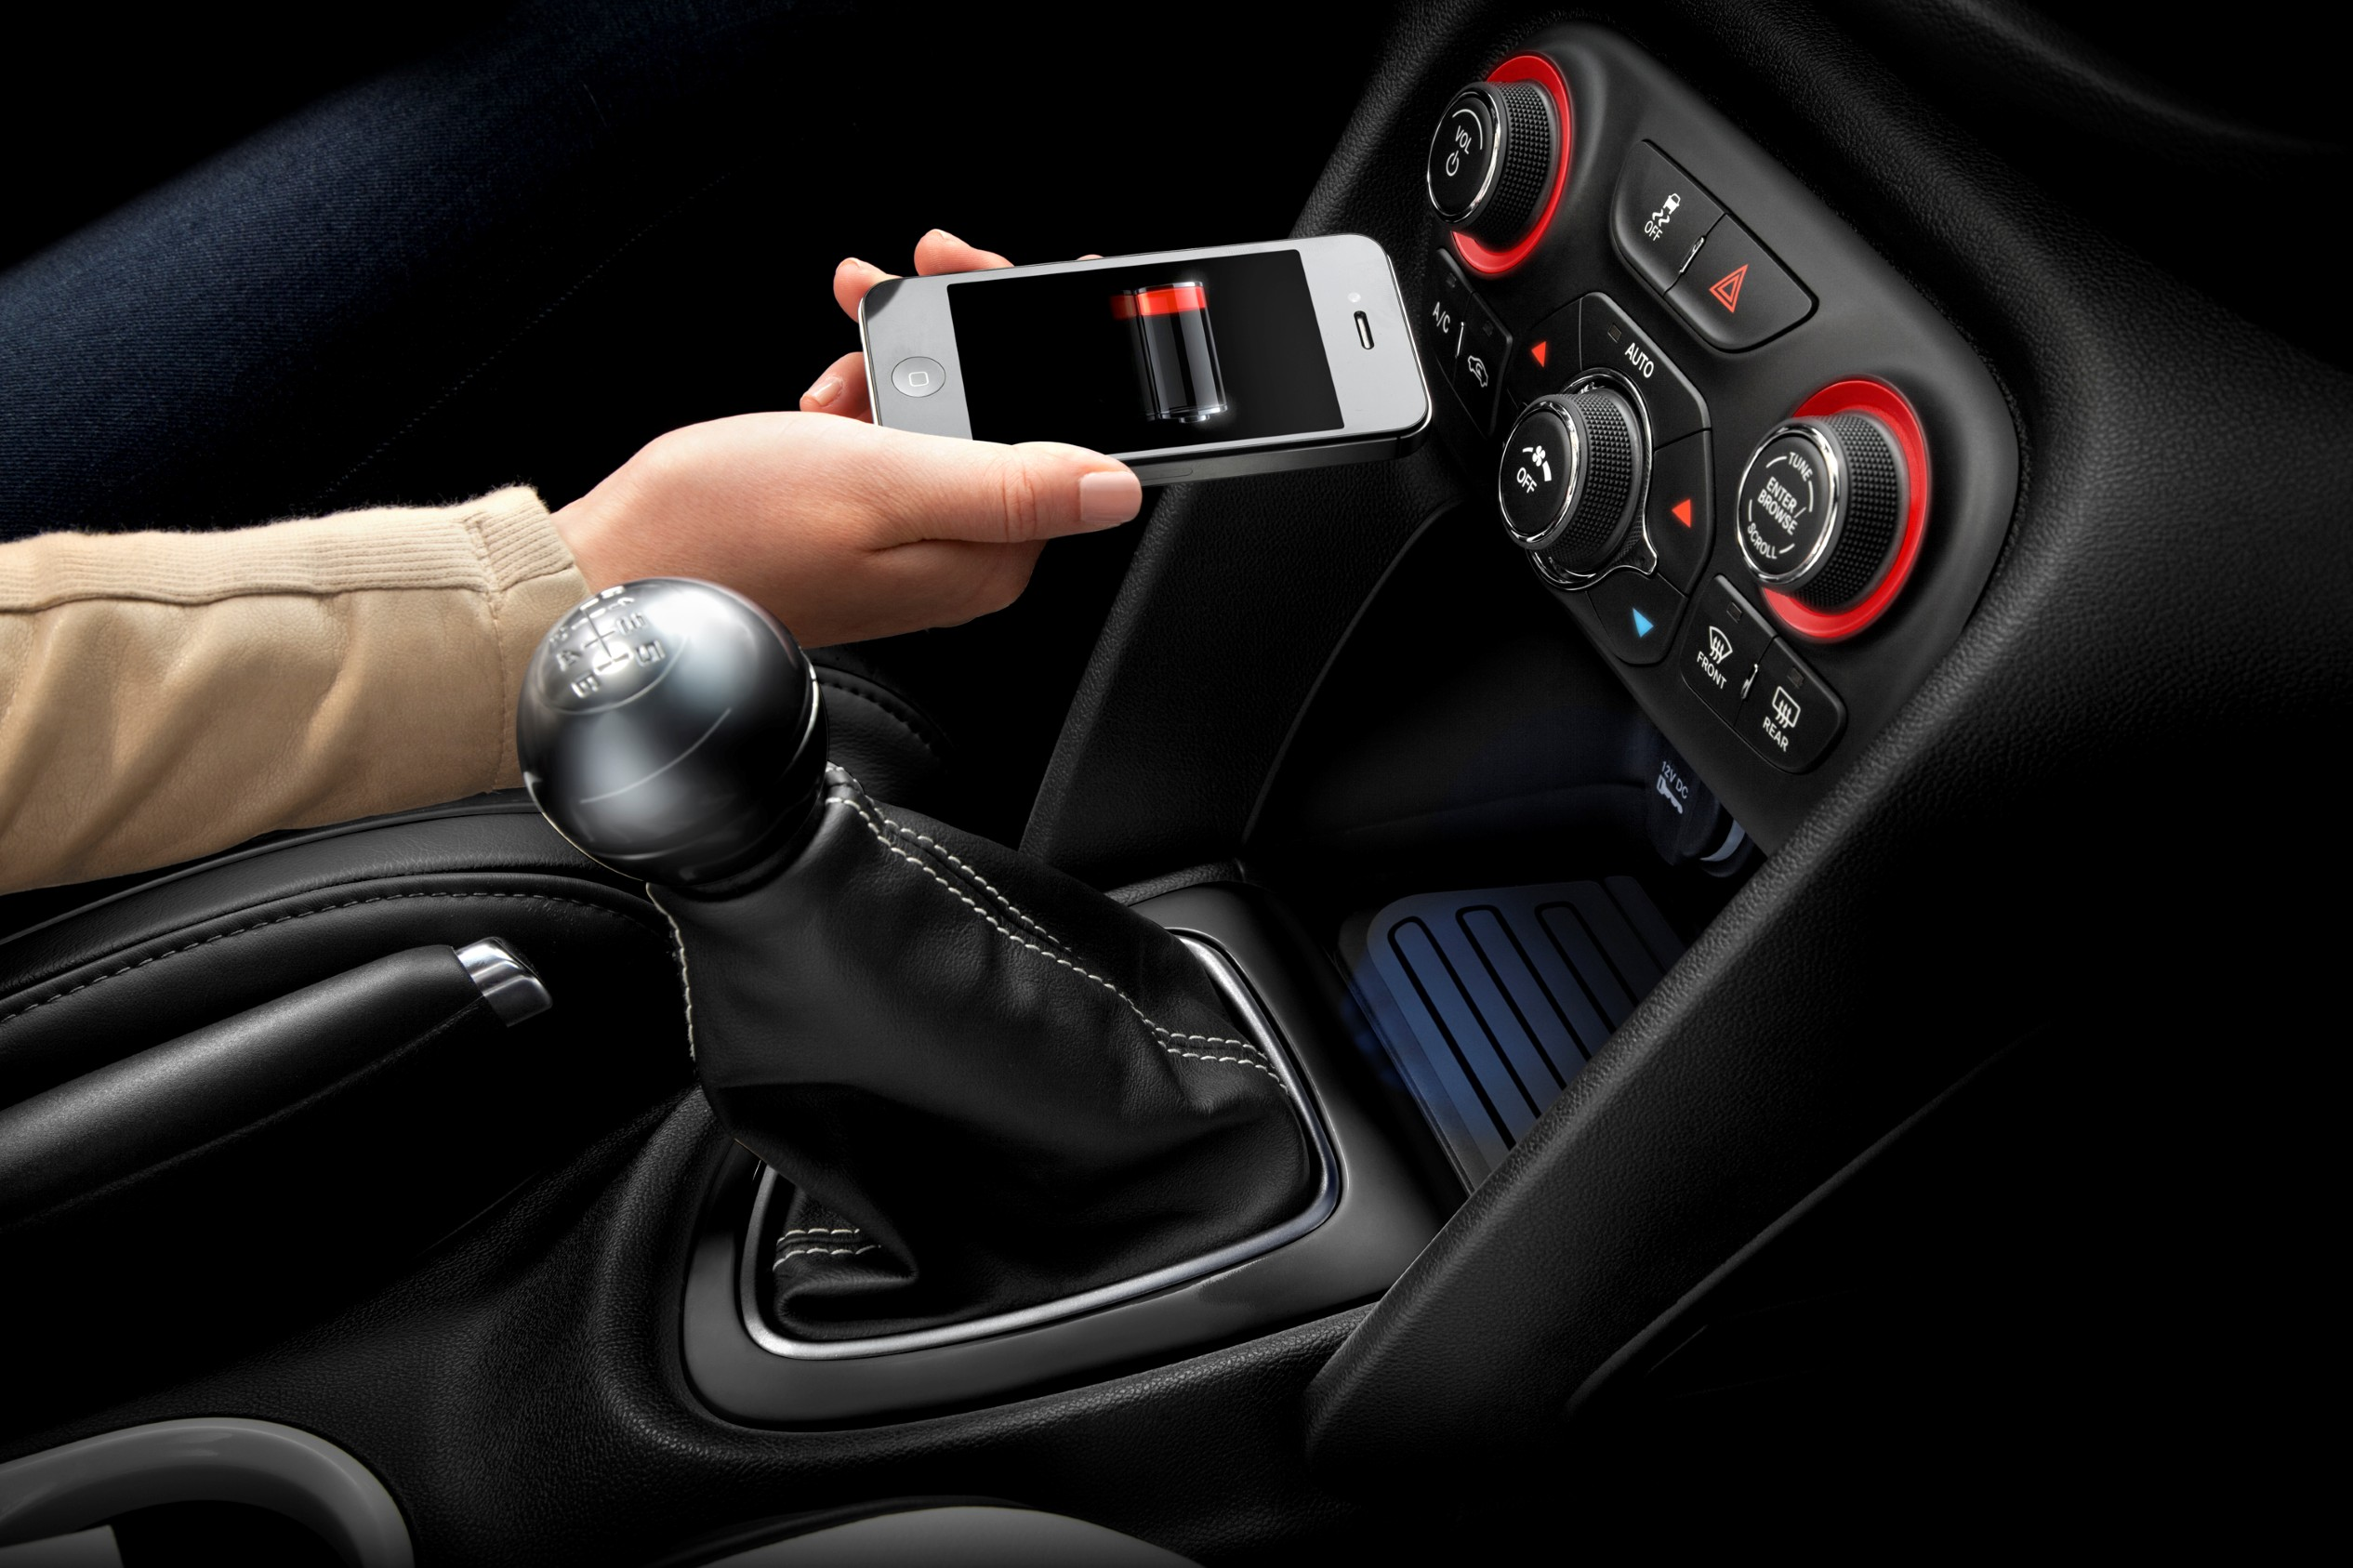 Best Iphone Car Mount For Honda Accord